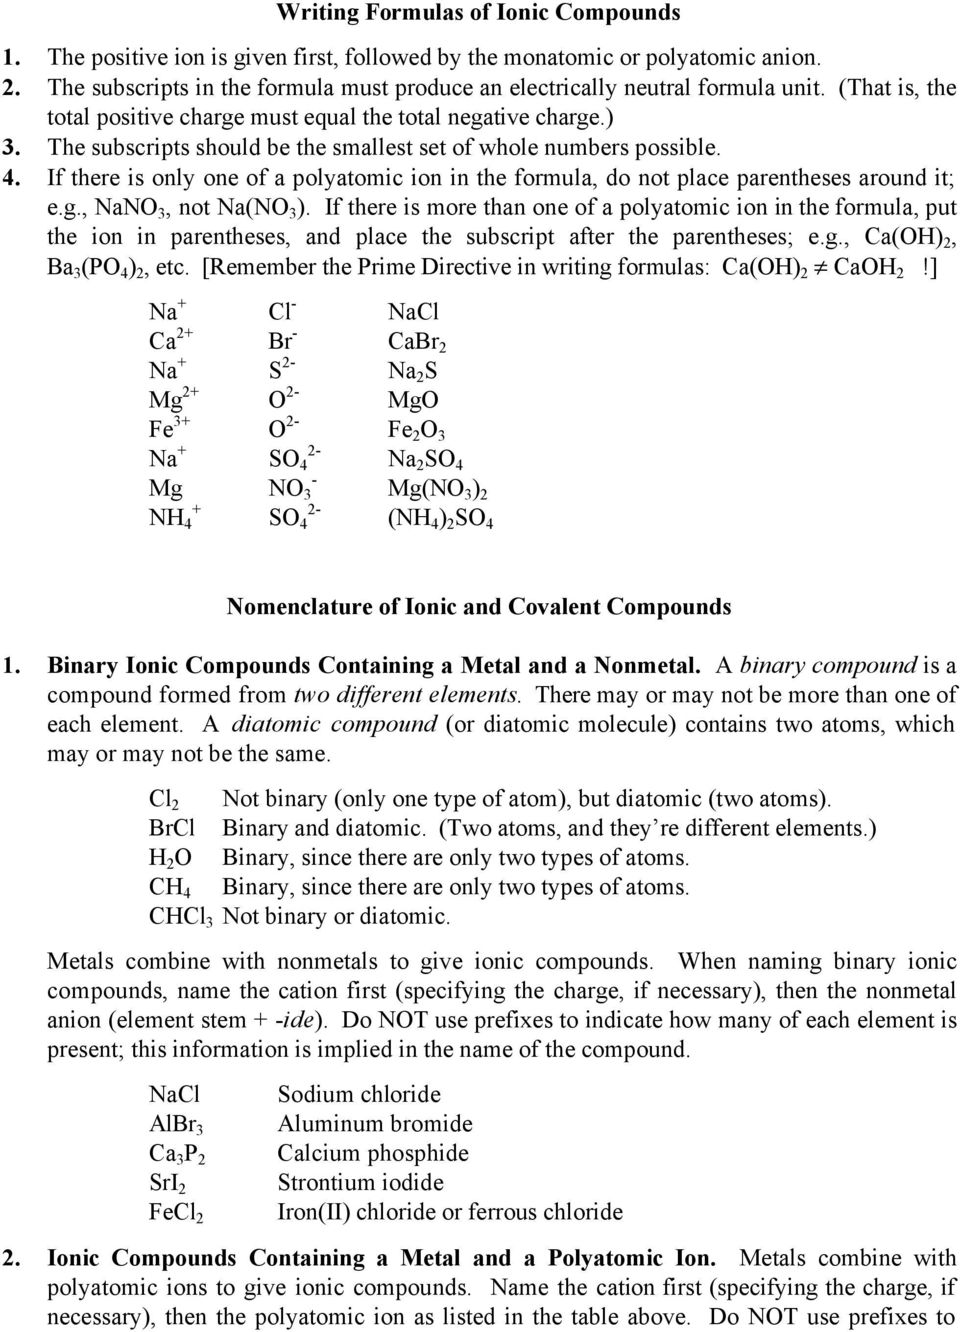 Formulas And Nomenclature Of Ionic And Covalent Compounds Adapted